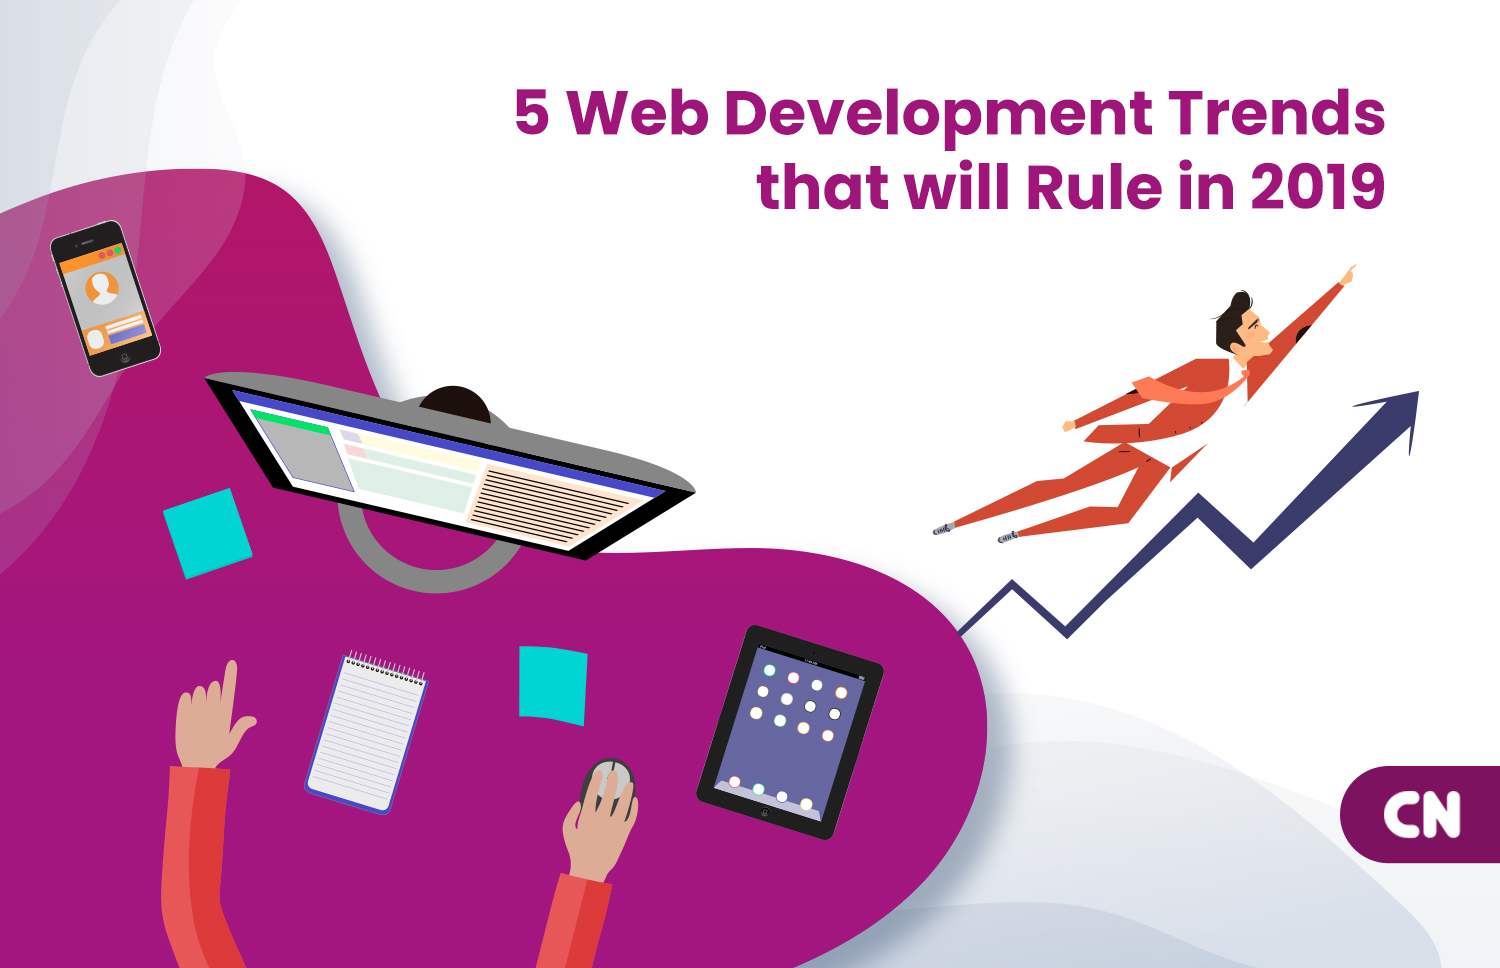 5 Web Development Trends that will Rule in 2019